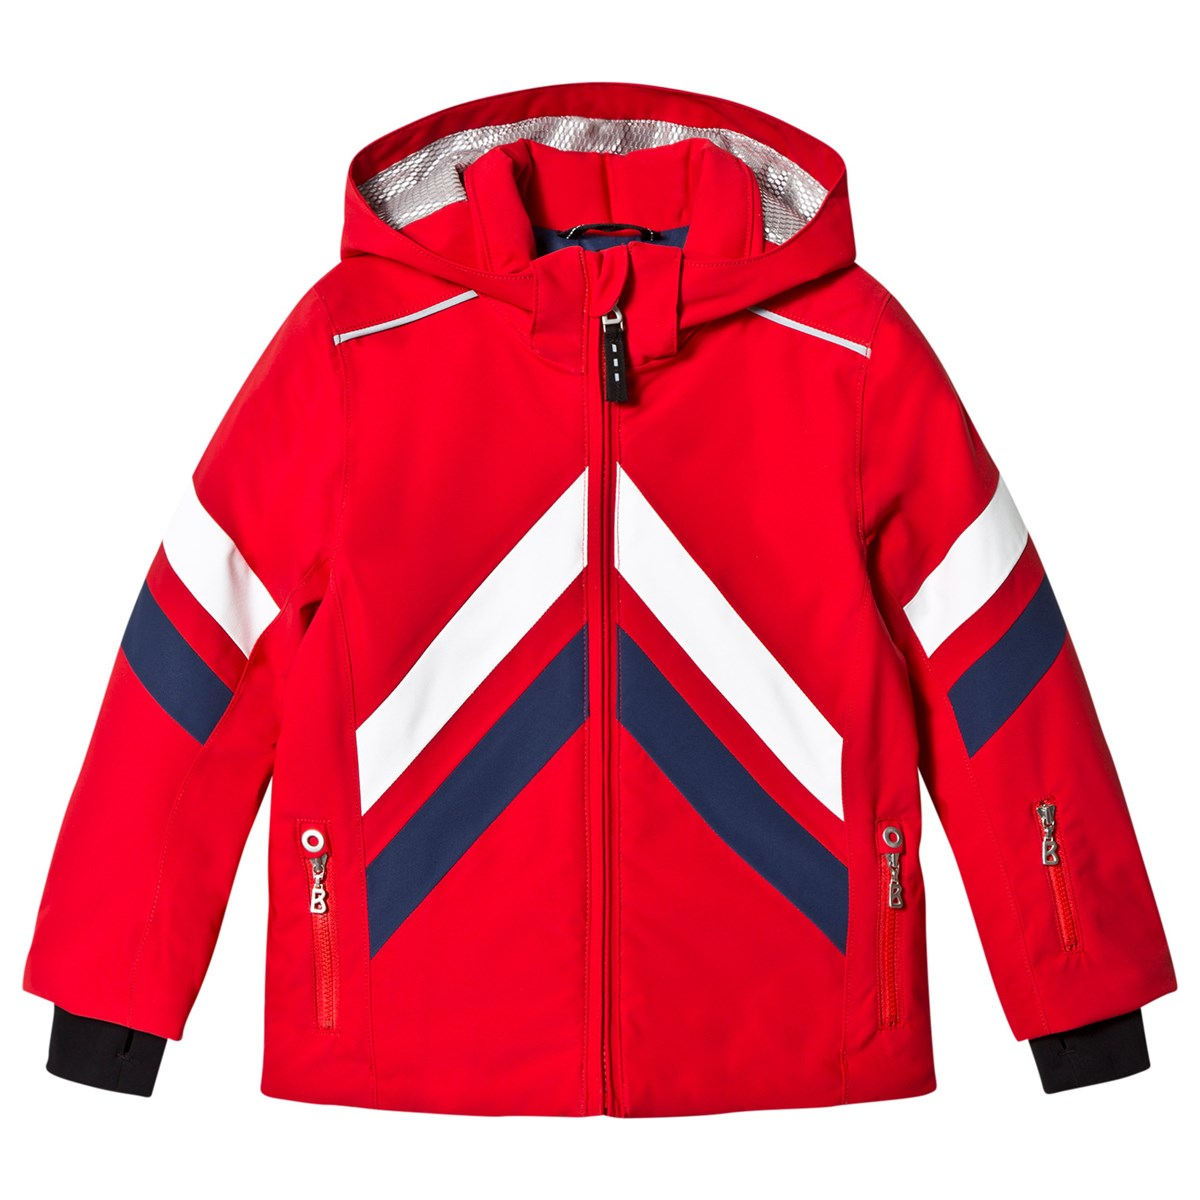 a6a12efd8 Buy helicopter ski jacket. Shop every store on the internet via ...